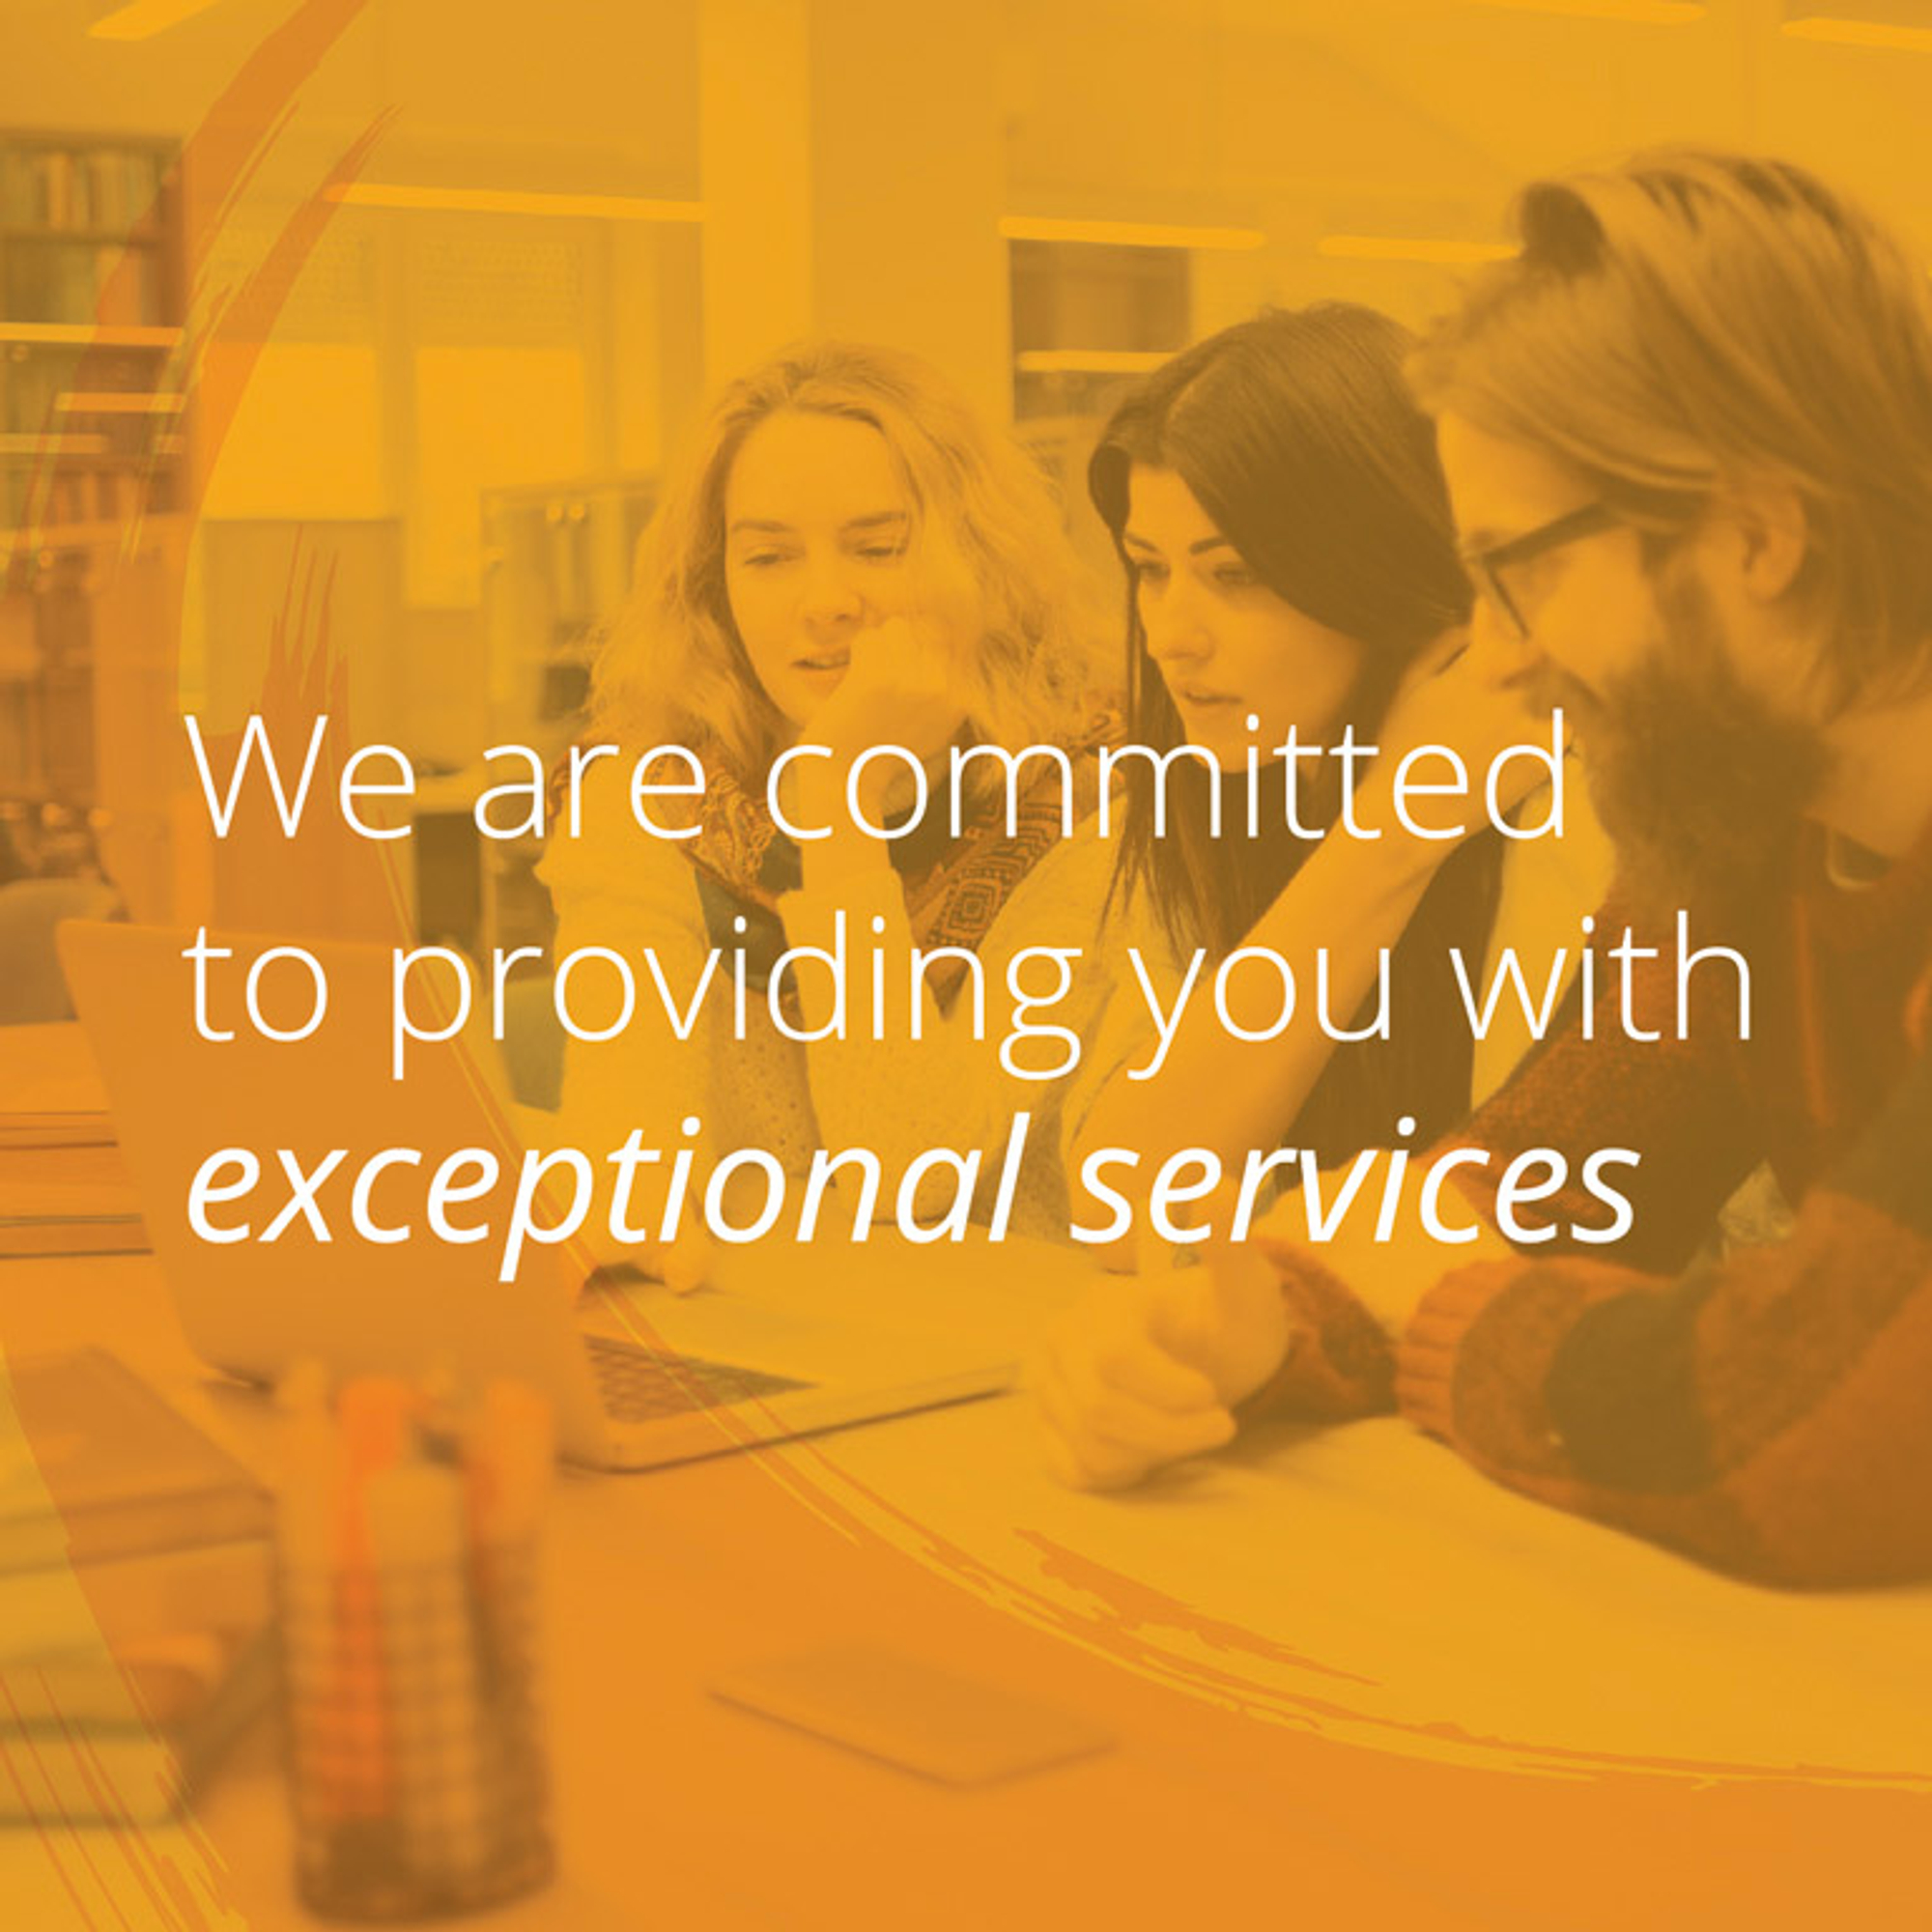 We are committed to providing you with exceptional services